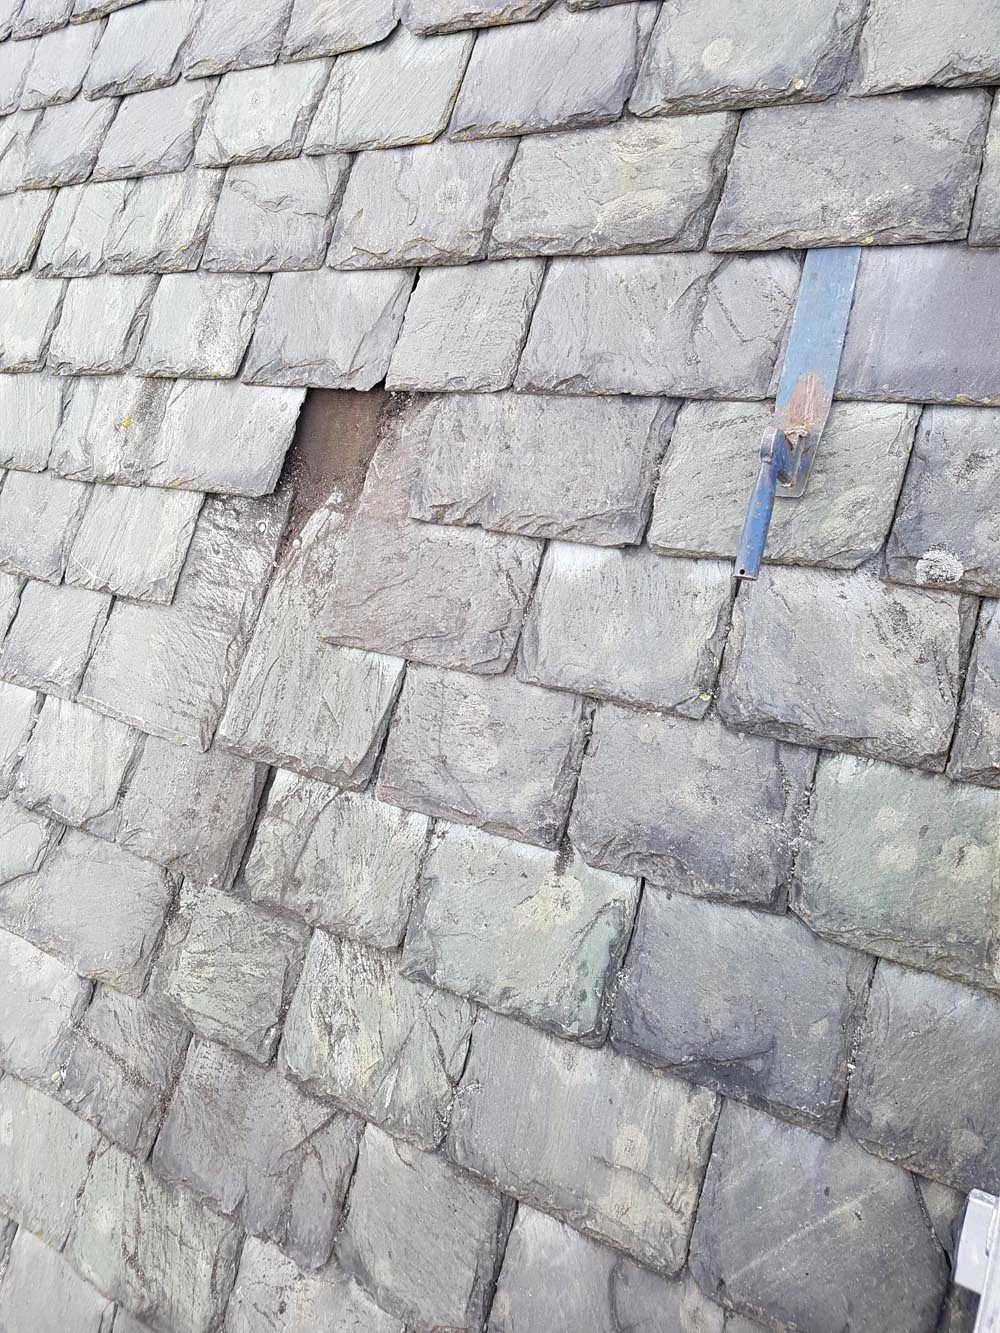 Slate patching